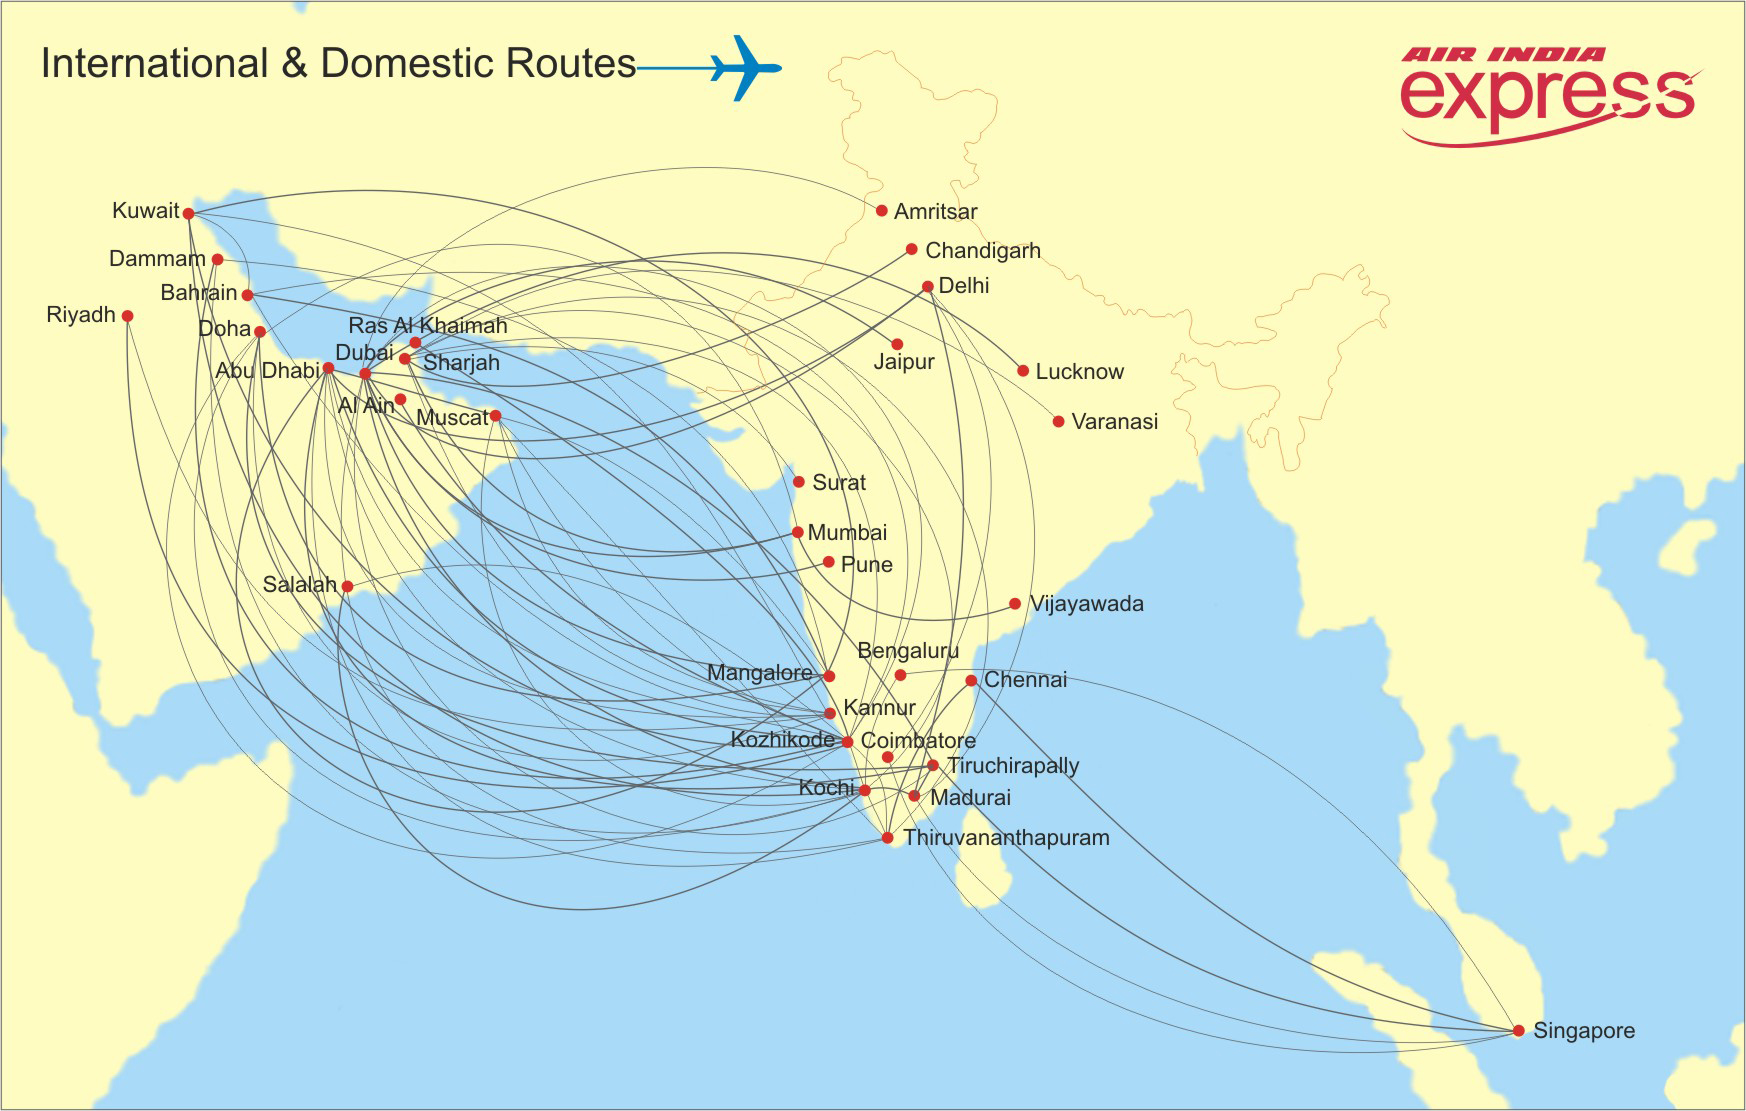 air map of india Express Route Map And Schedule Air India Express air map of india